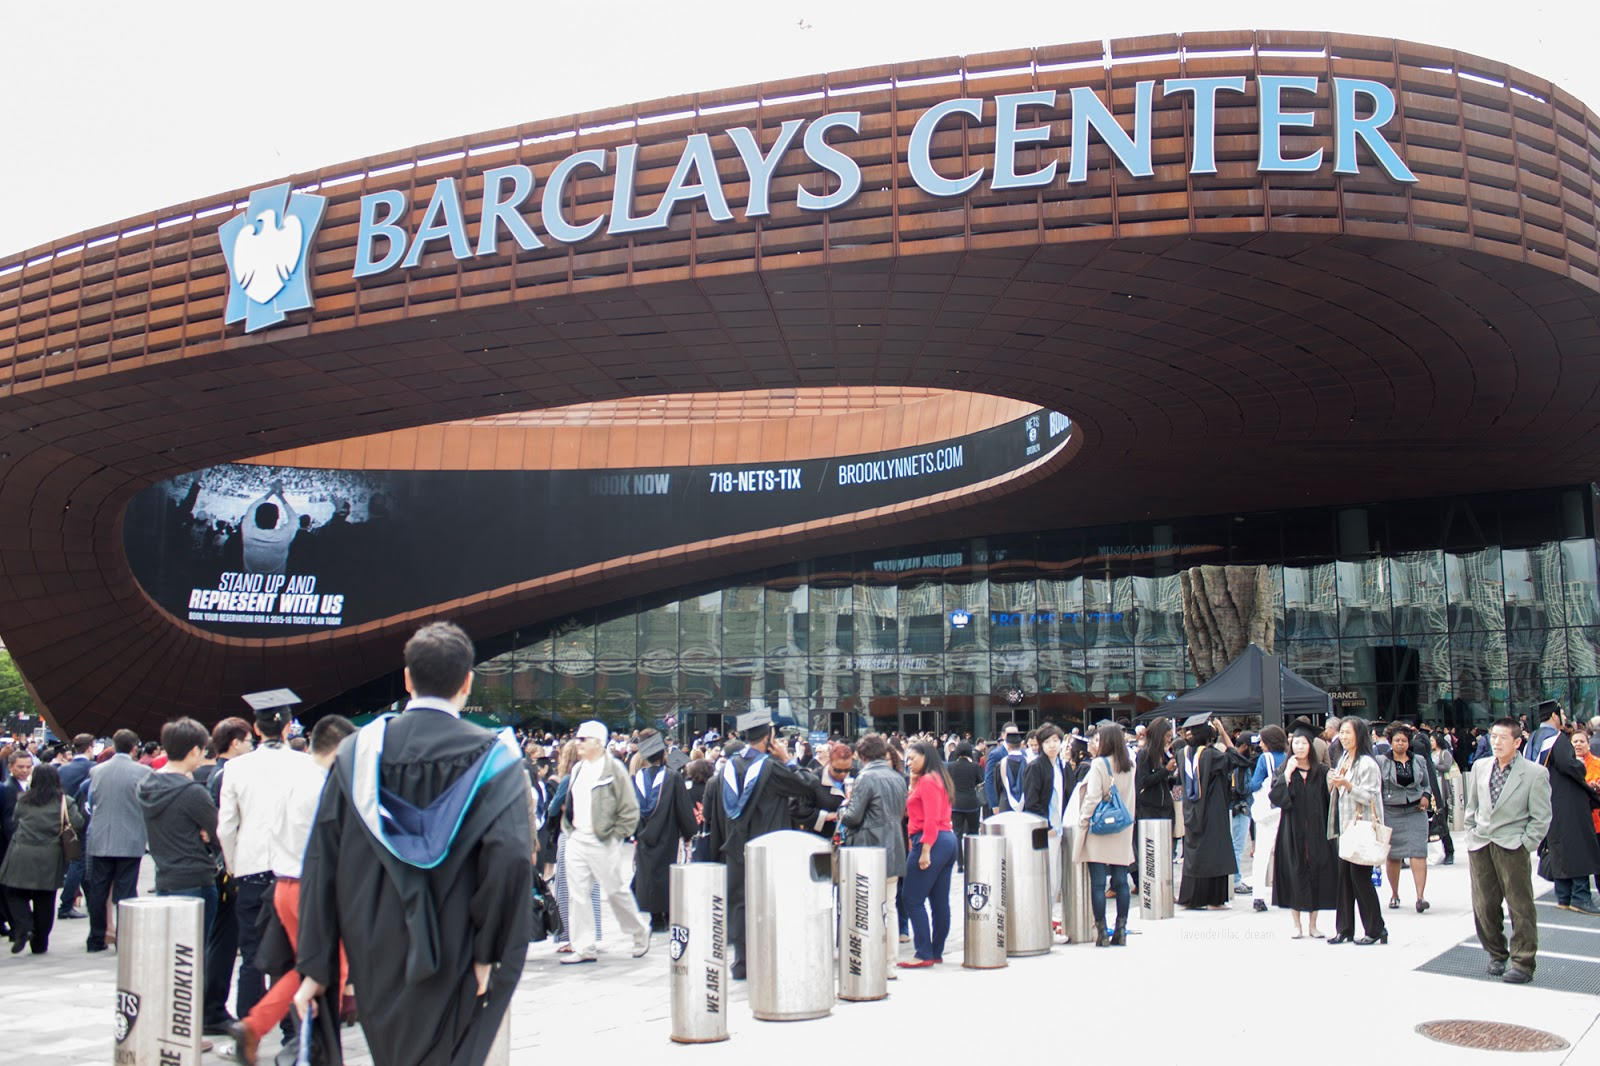 Baruch College, Barclays Center, Barclays Center outside, 2015 Commencement, undergraduate, graduation, New York